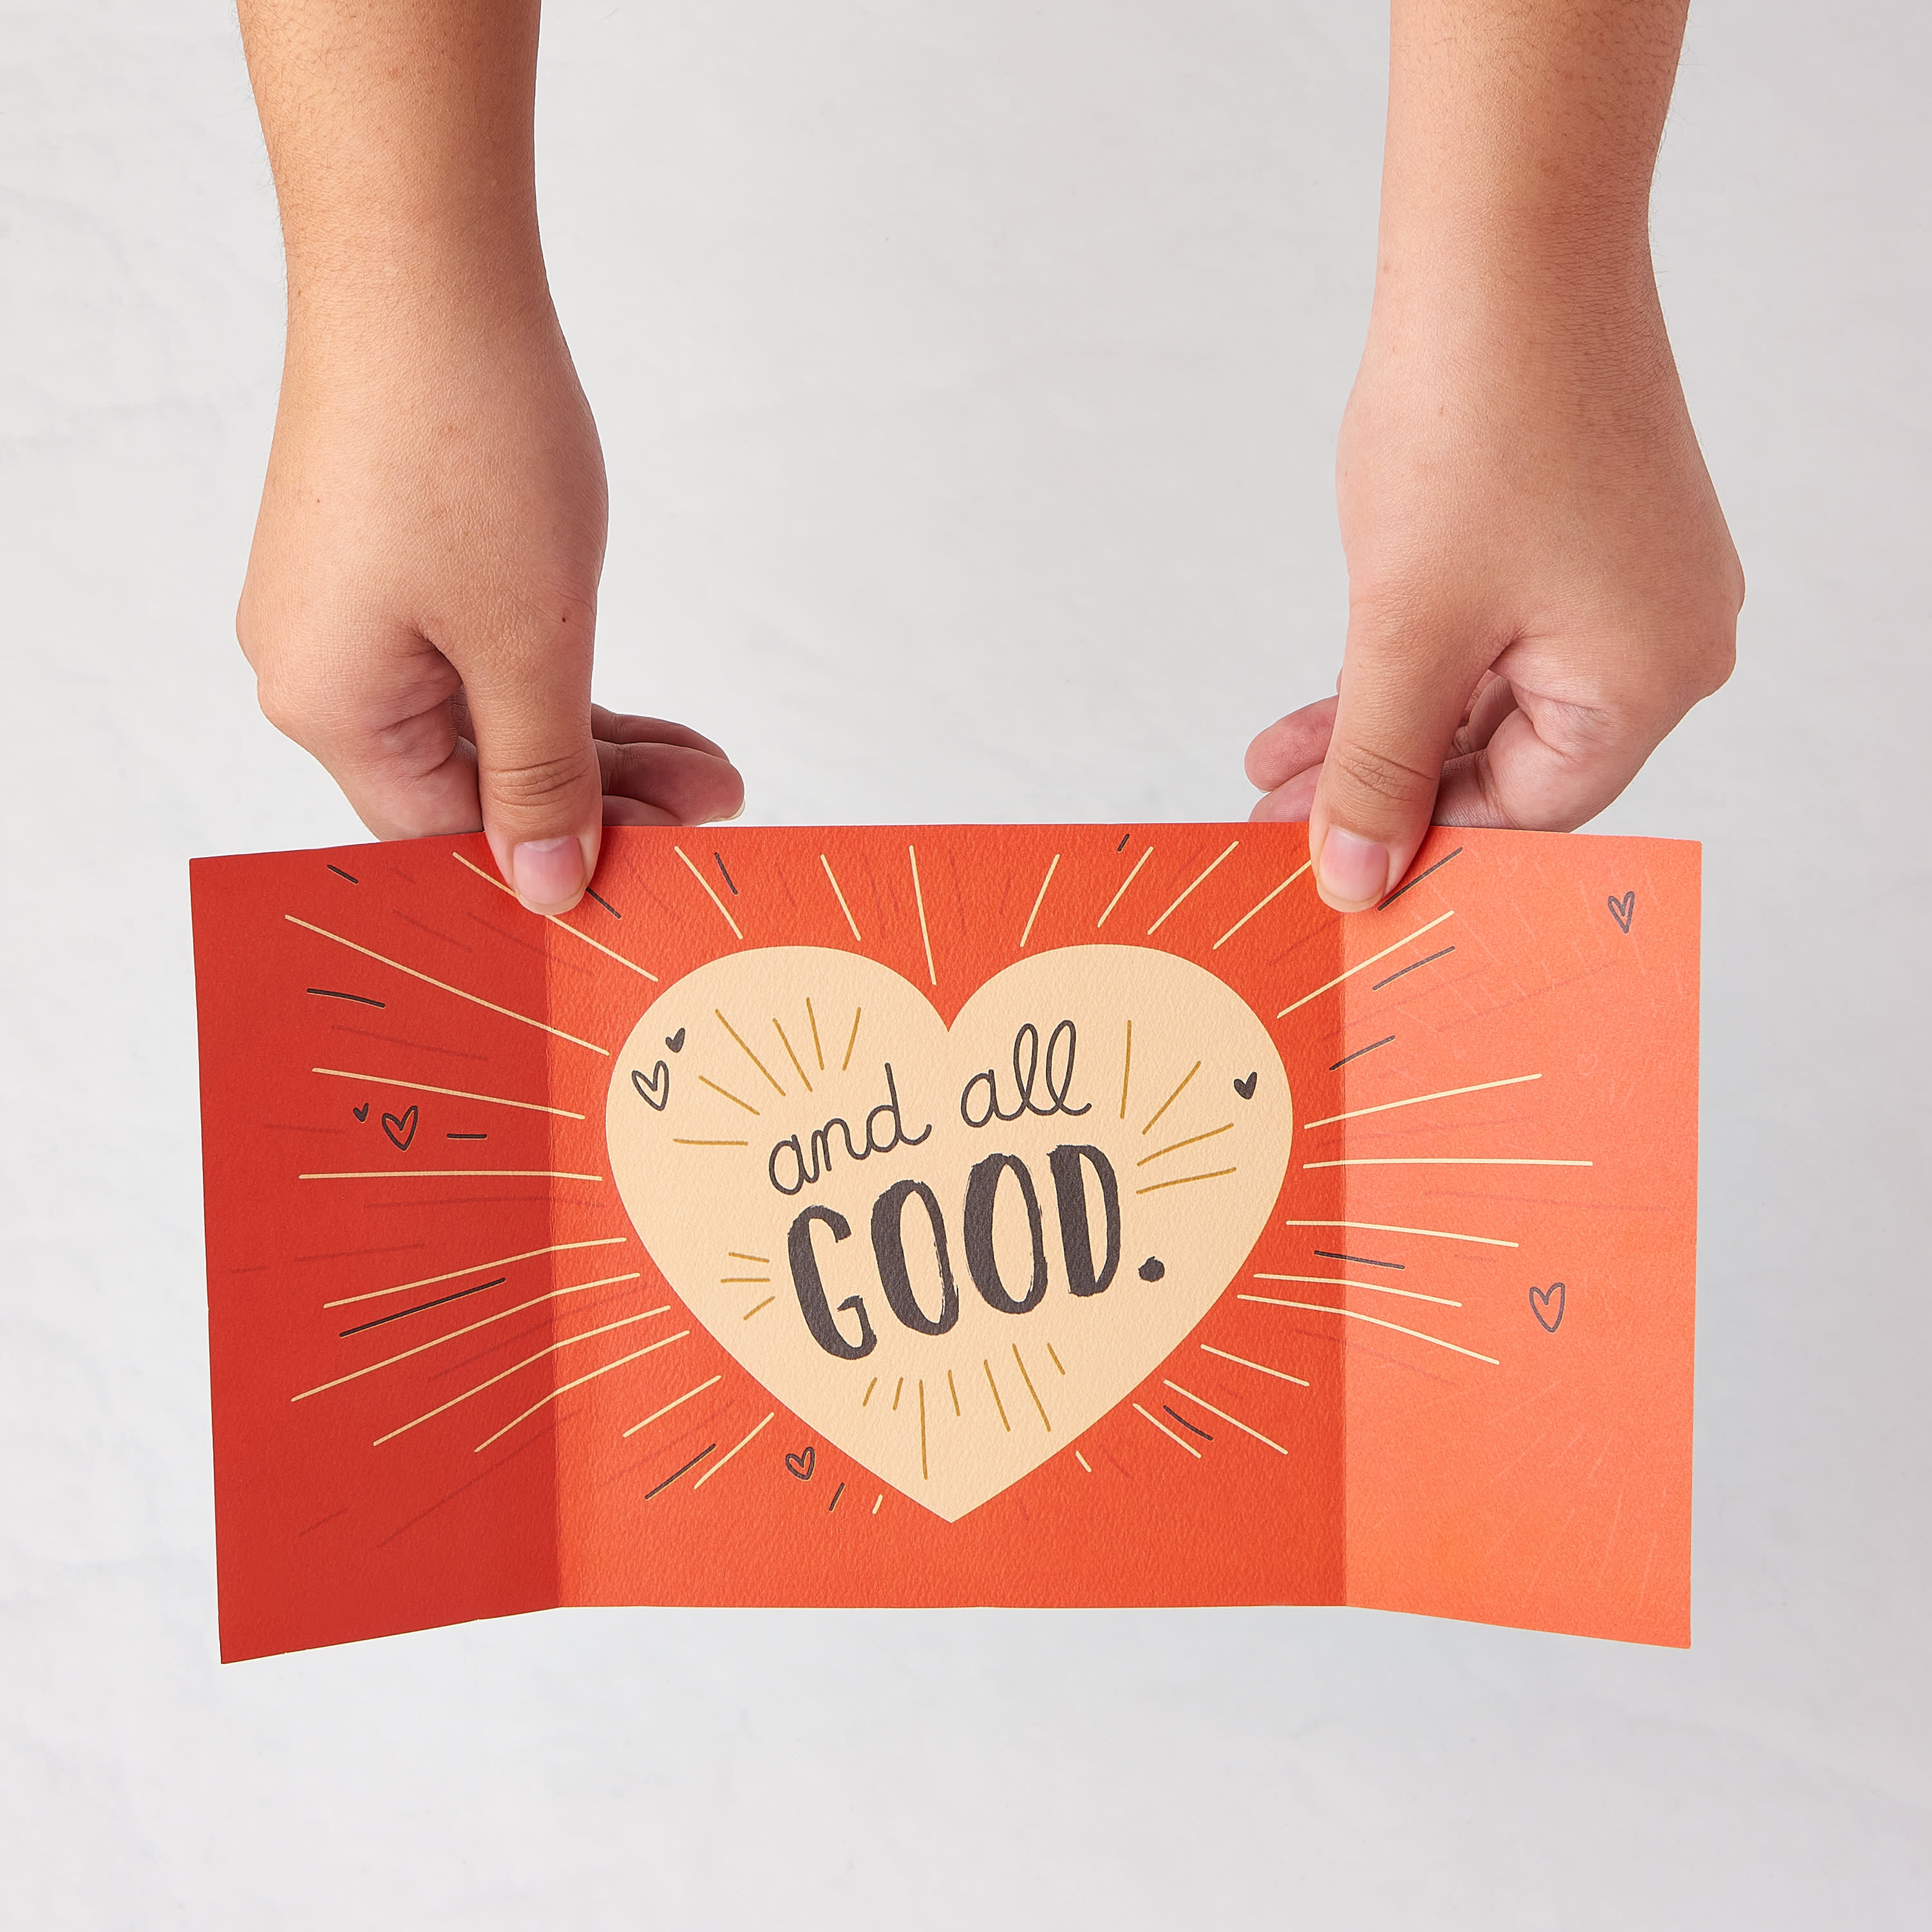 Insane and Crazy Valentine's Day Card for Husband image